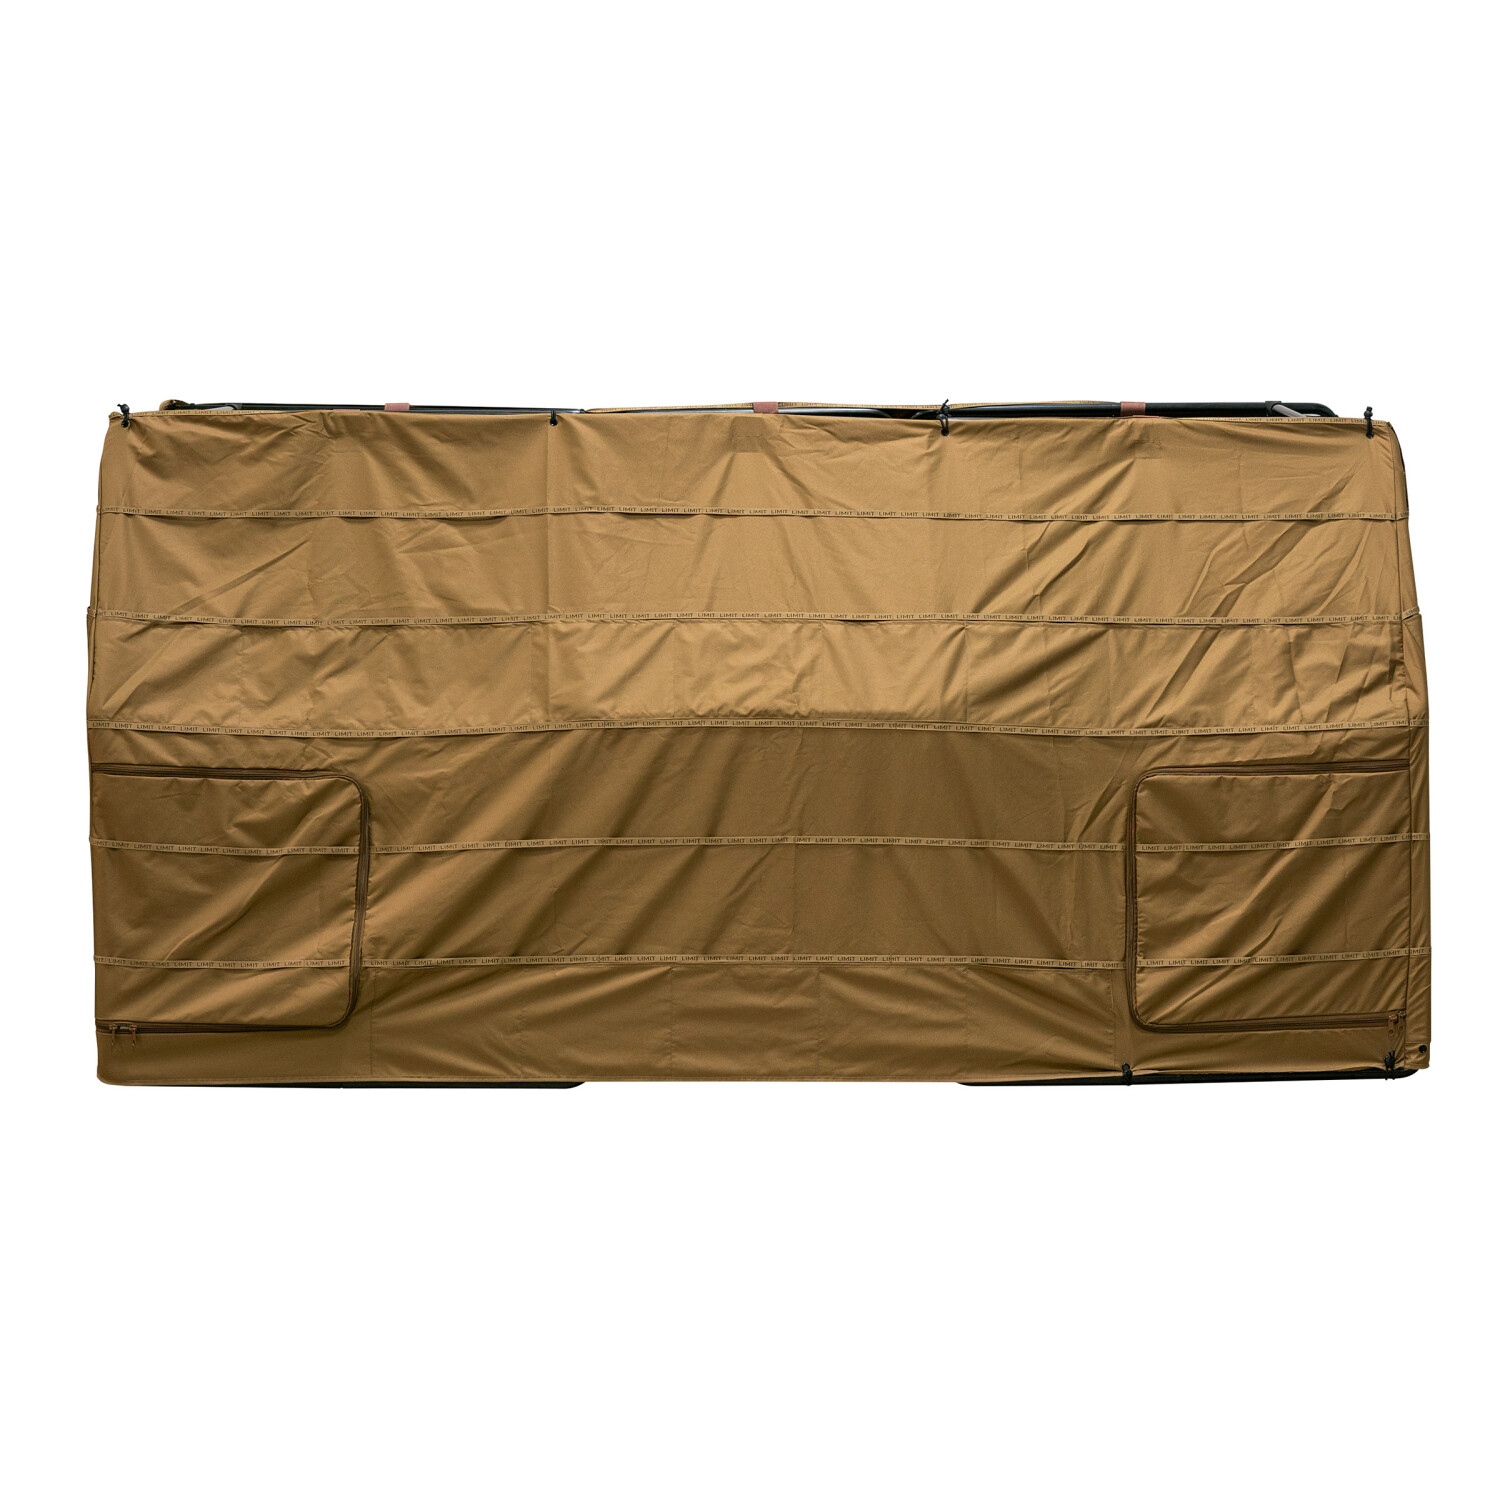 Limit Waterfowl Gbx Ground Aframe Blind Sporting Goods LIMIT-GBX